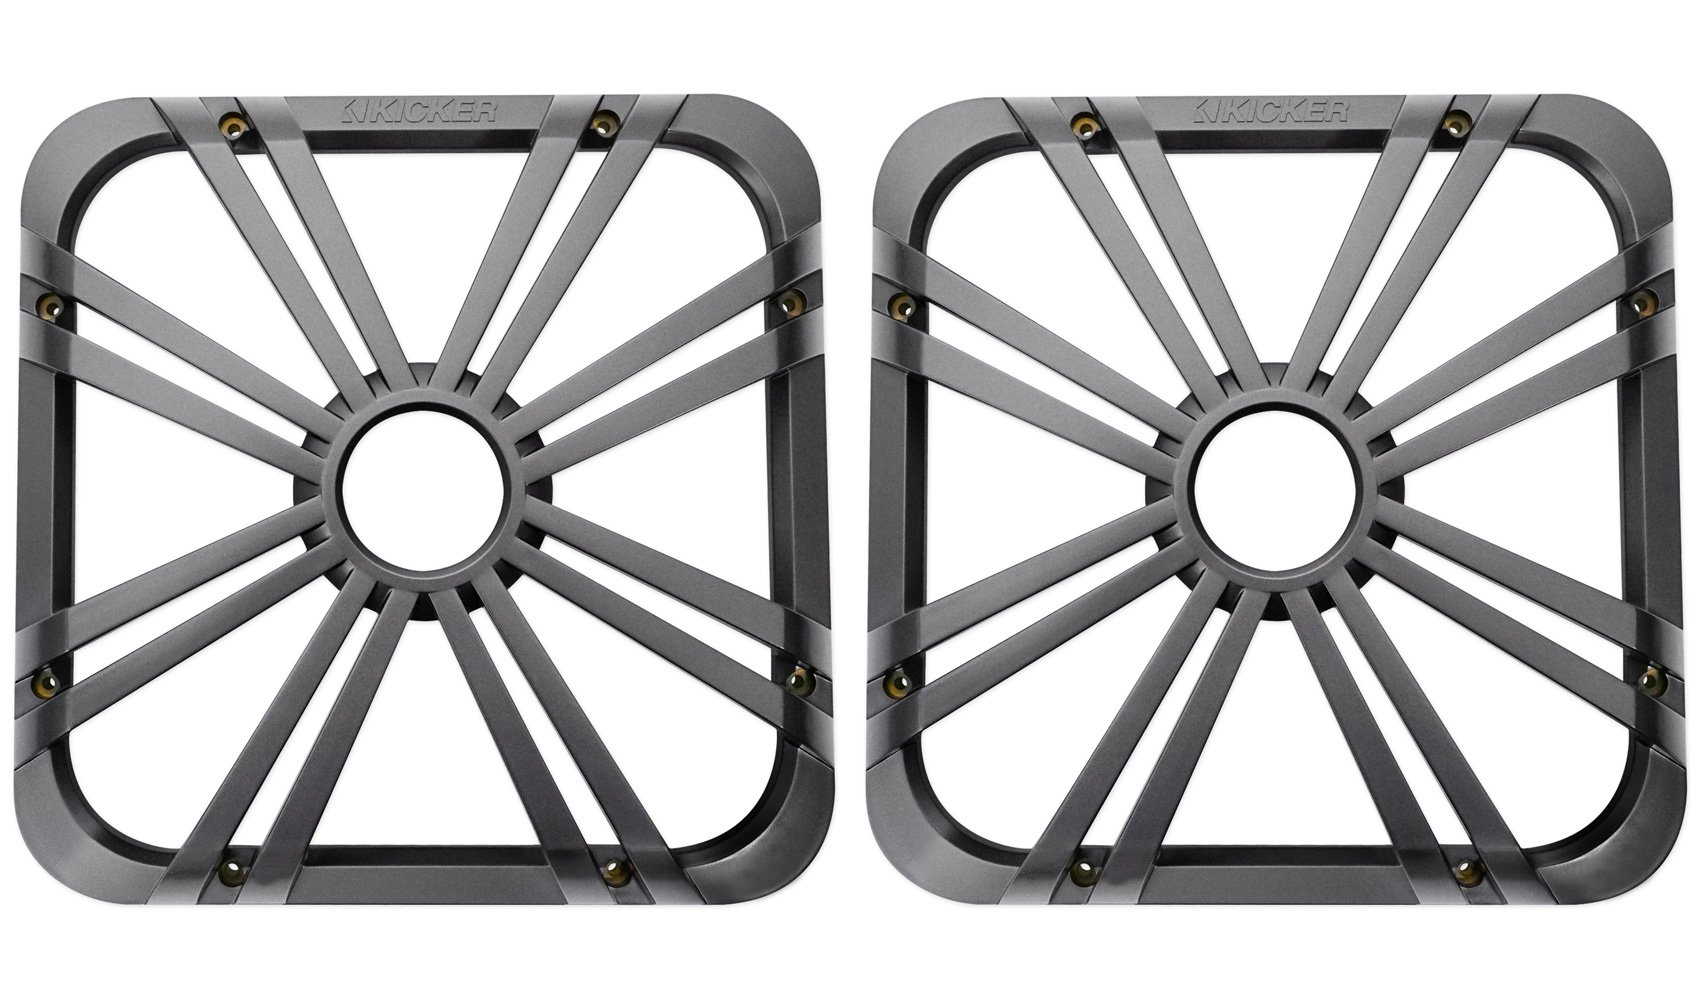 (2) Kicker 11L712GLCR 12'' Chrome Grilles With LED Lighting For SoloBaric 11S12L7 Subwoofer